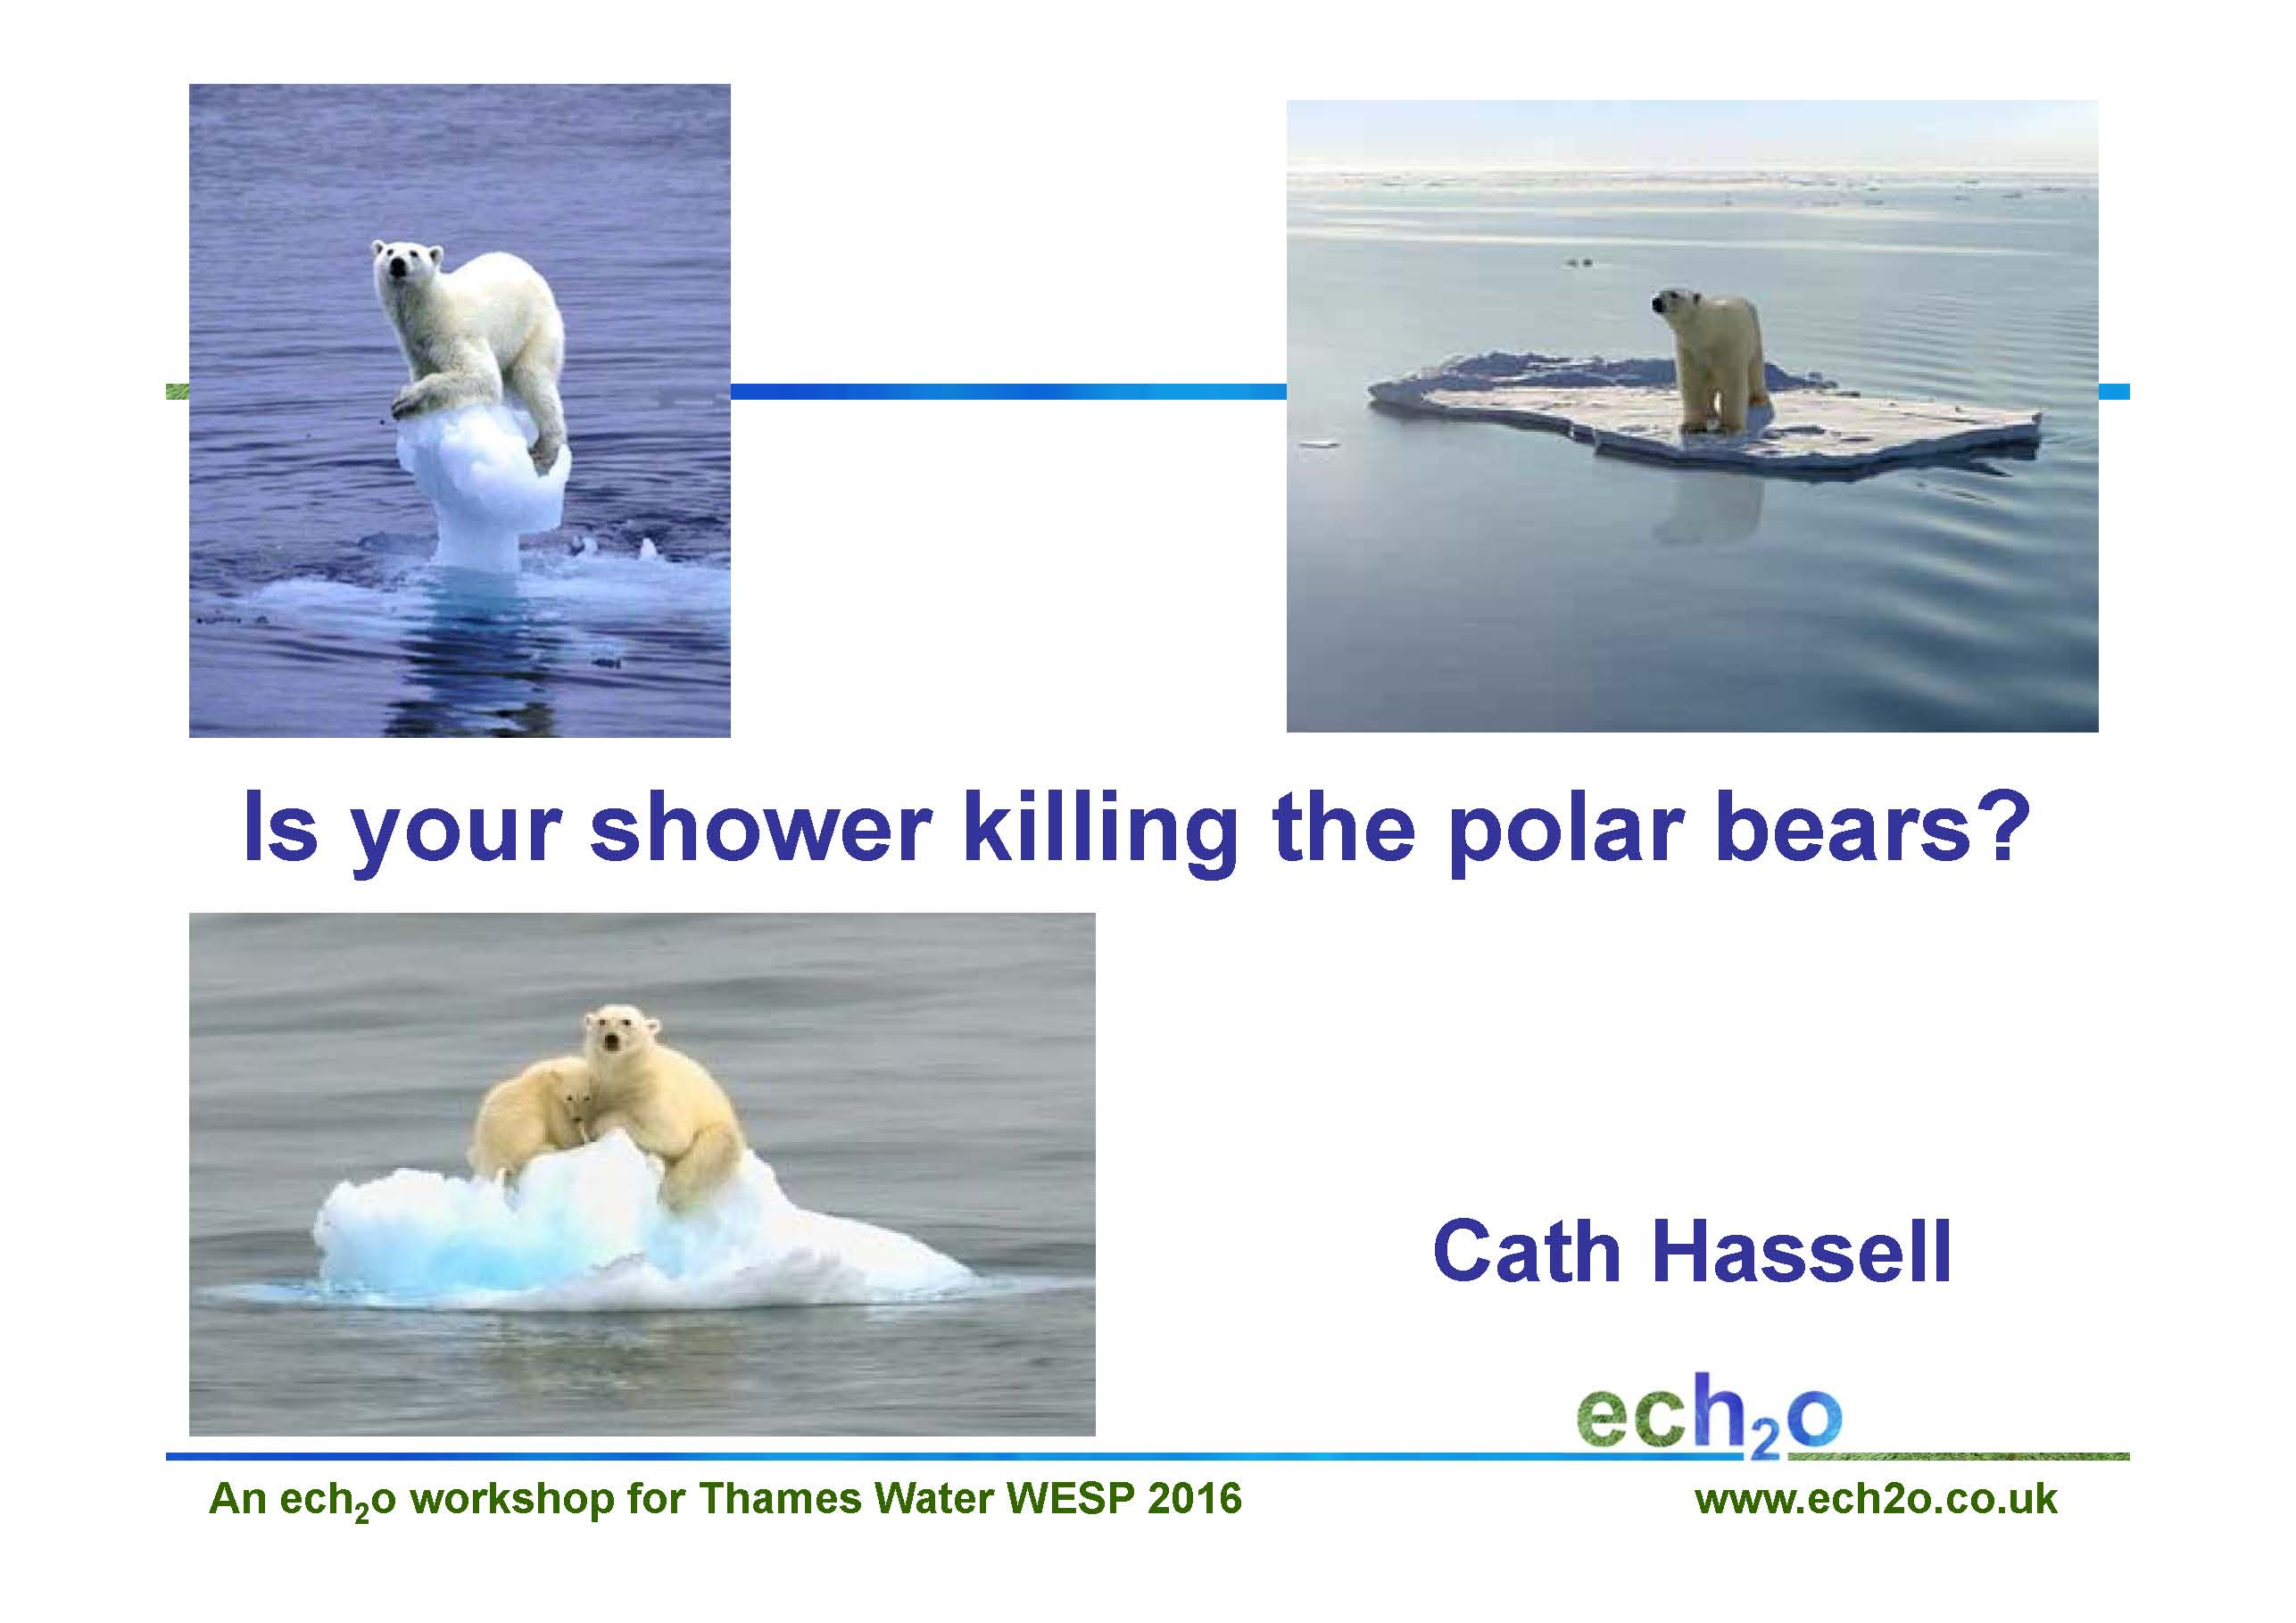 TW WESP is your shower killing the polar bears slide